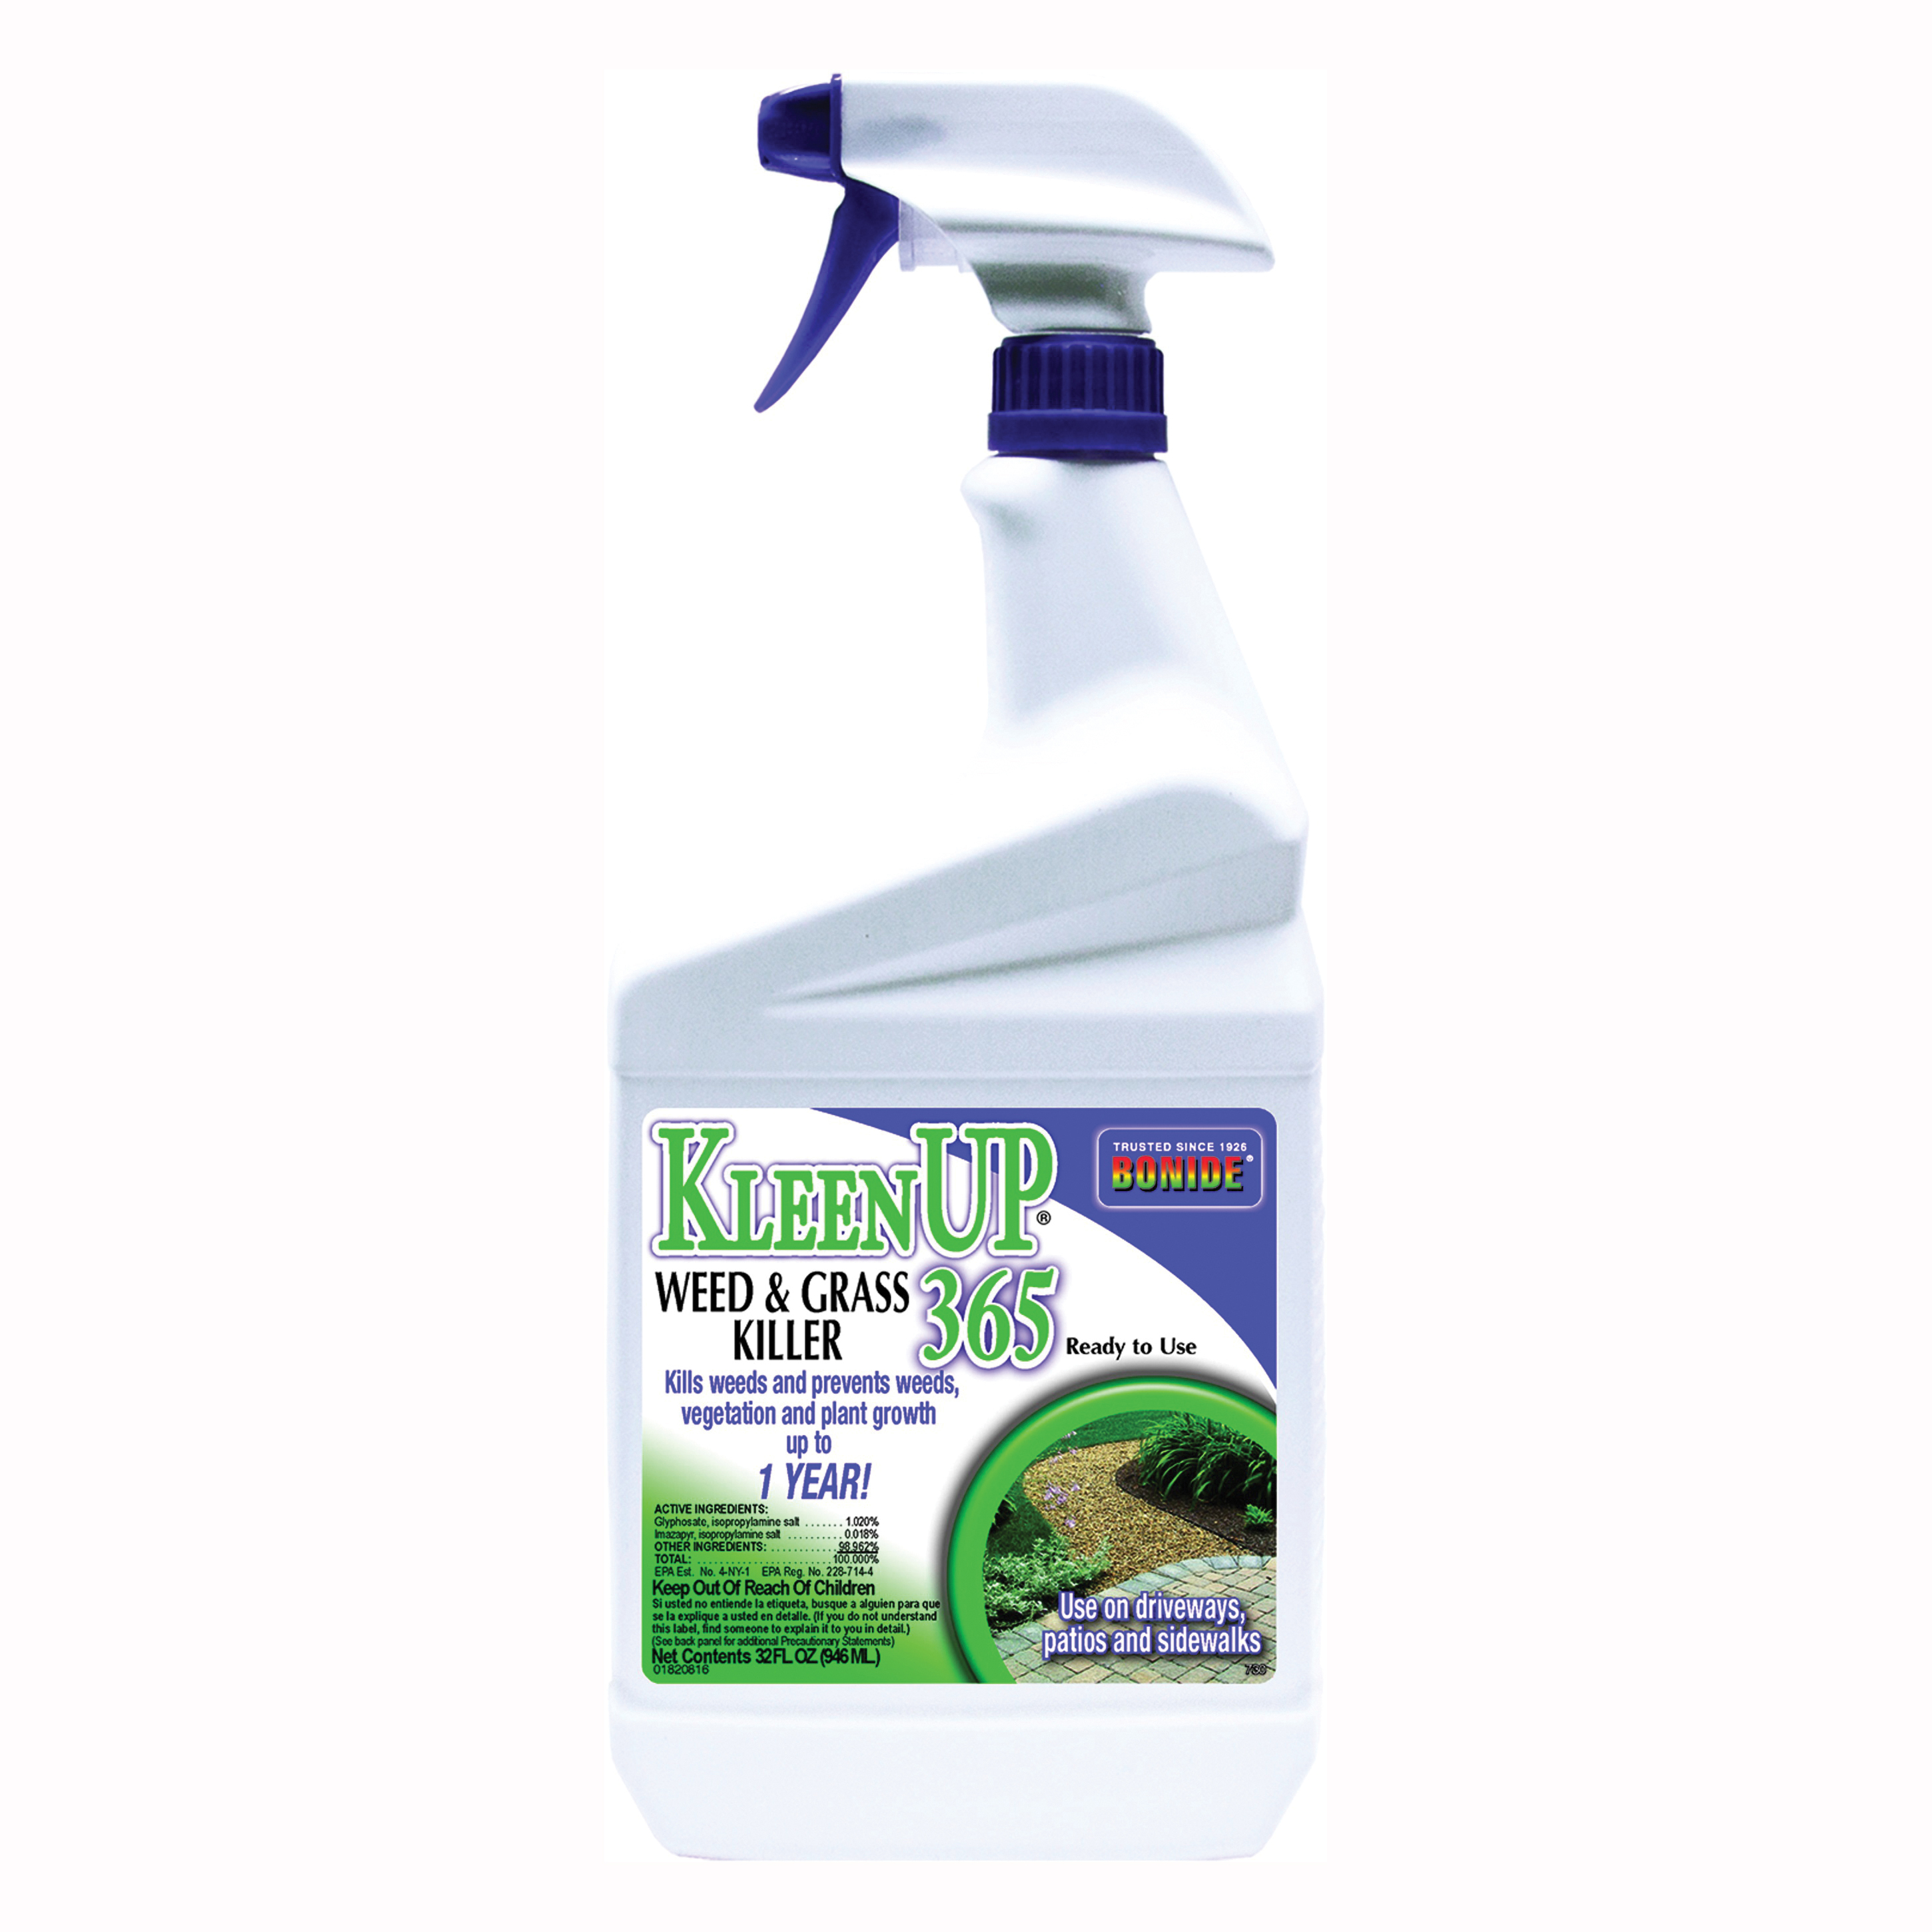 Picture of Bonide 730 Weed and Grass Killer, Liquid, Brown/Tan, 1 qt Package, Bottle